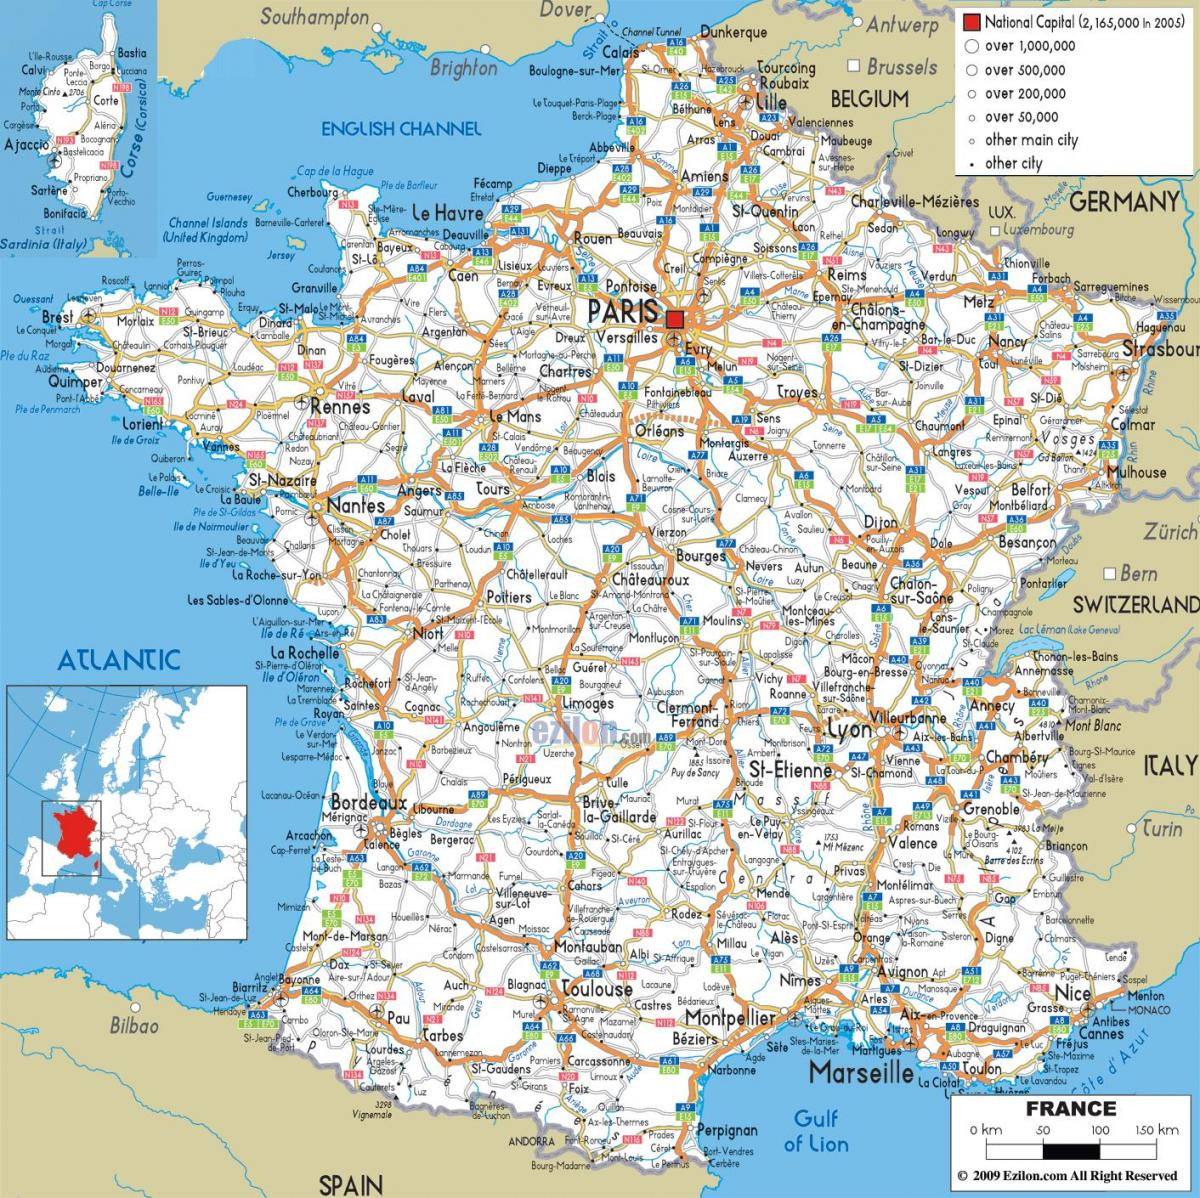 Road map of southern France South of France road trip map Western